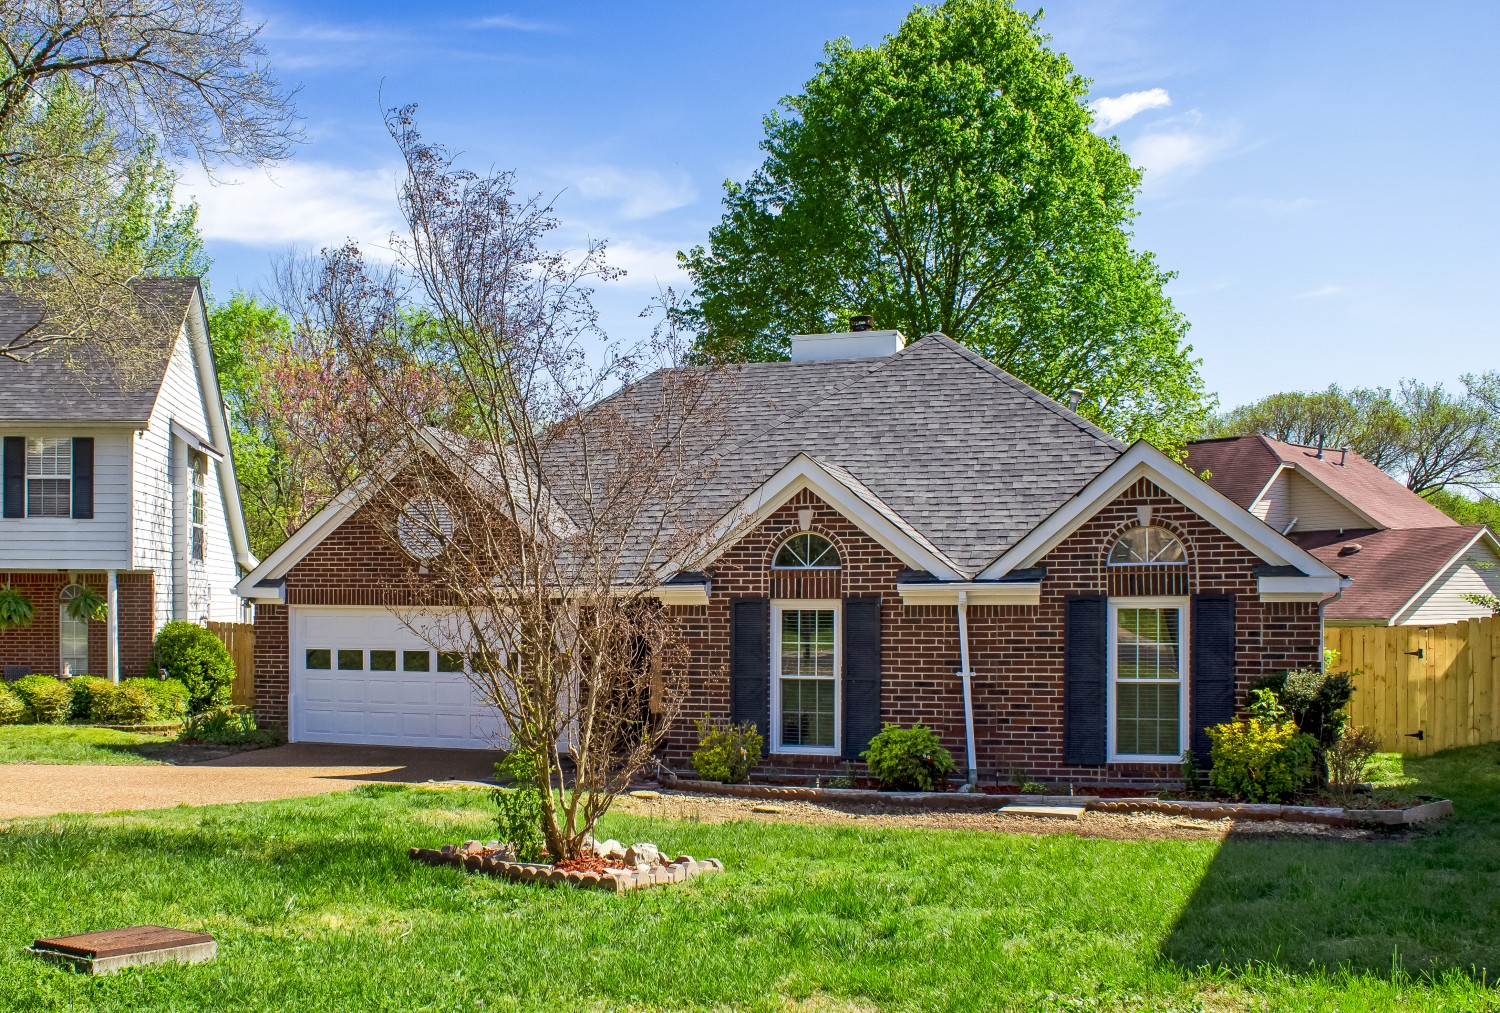 408 Barkley Ct, Nashville-Antioch in Davidson County, TN County, TN 37013 Home for Sale